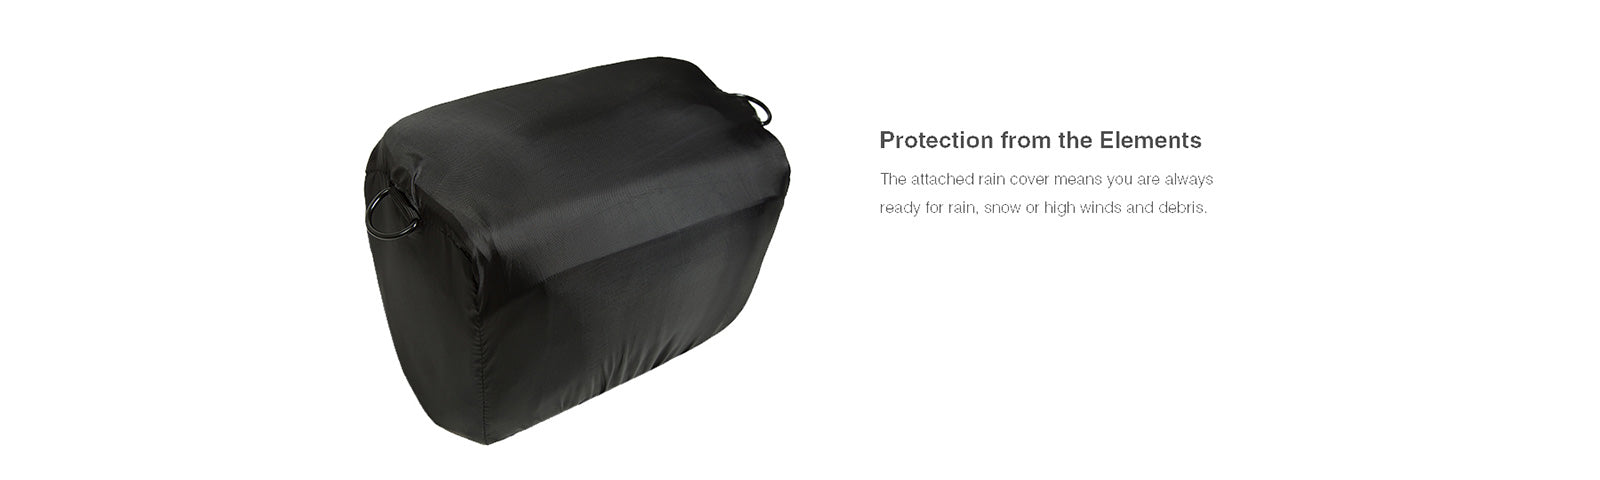 Protection from the elements: The attached rain cover means you are always ready for rain, snow or high winds and debris